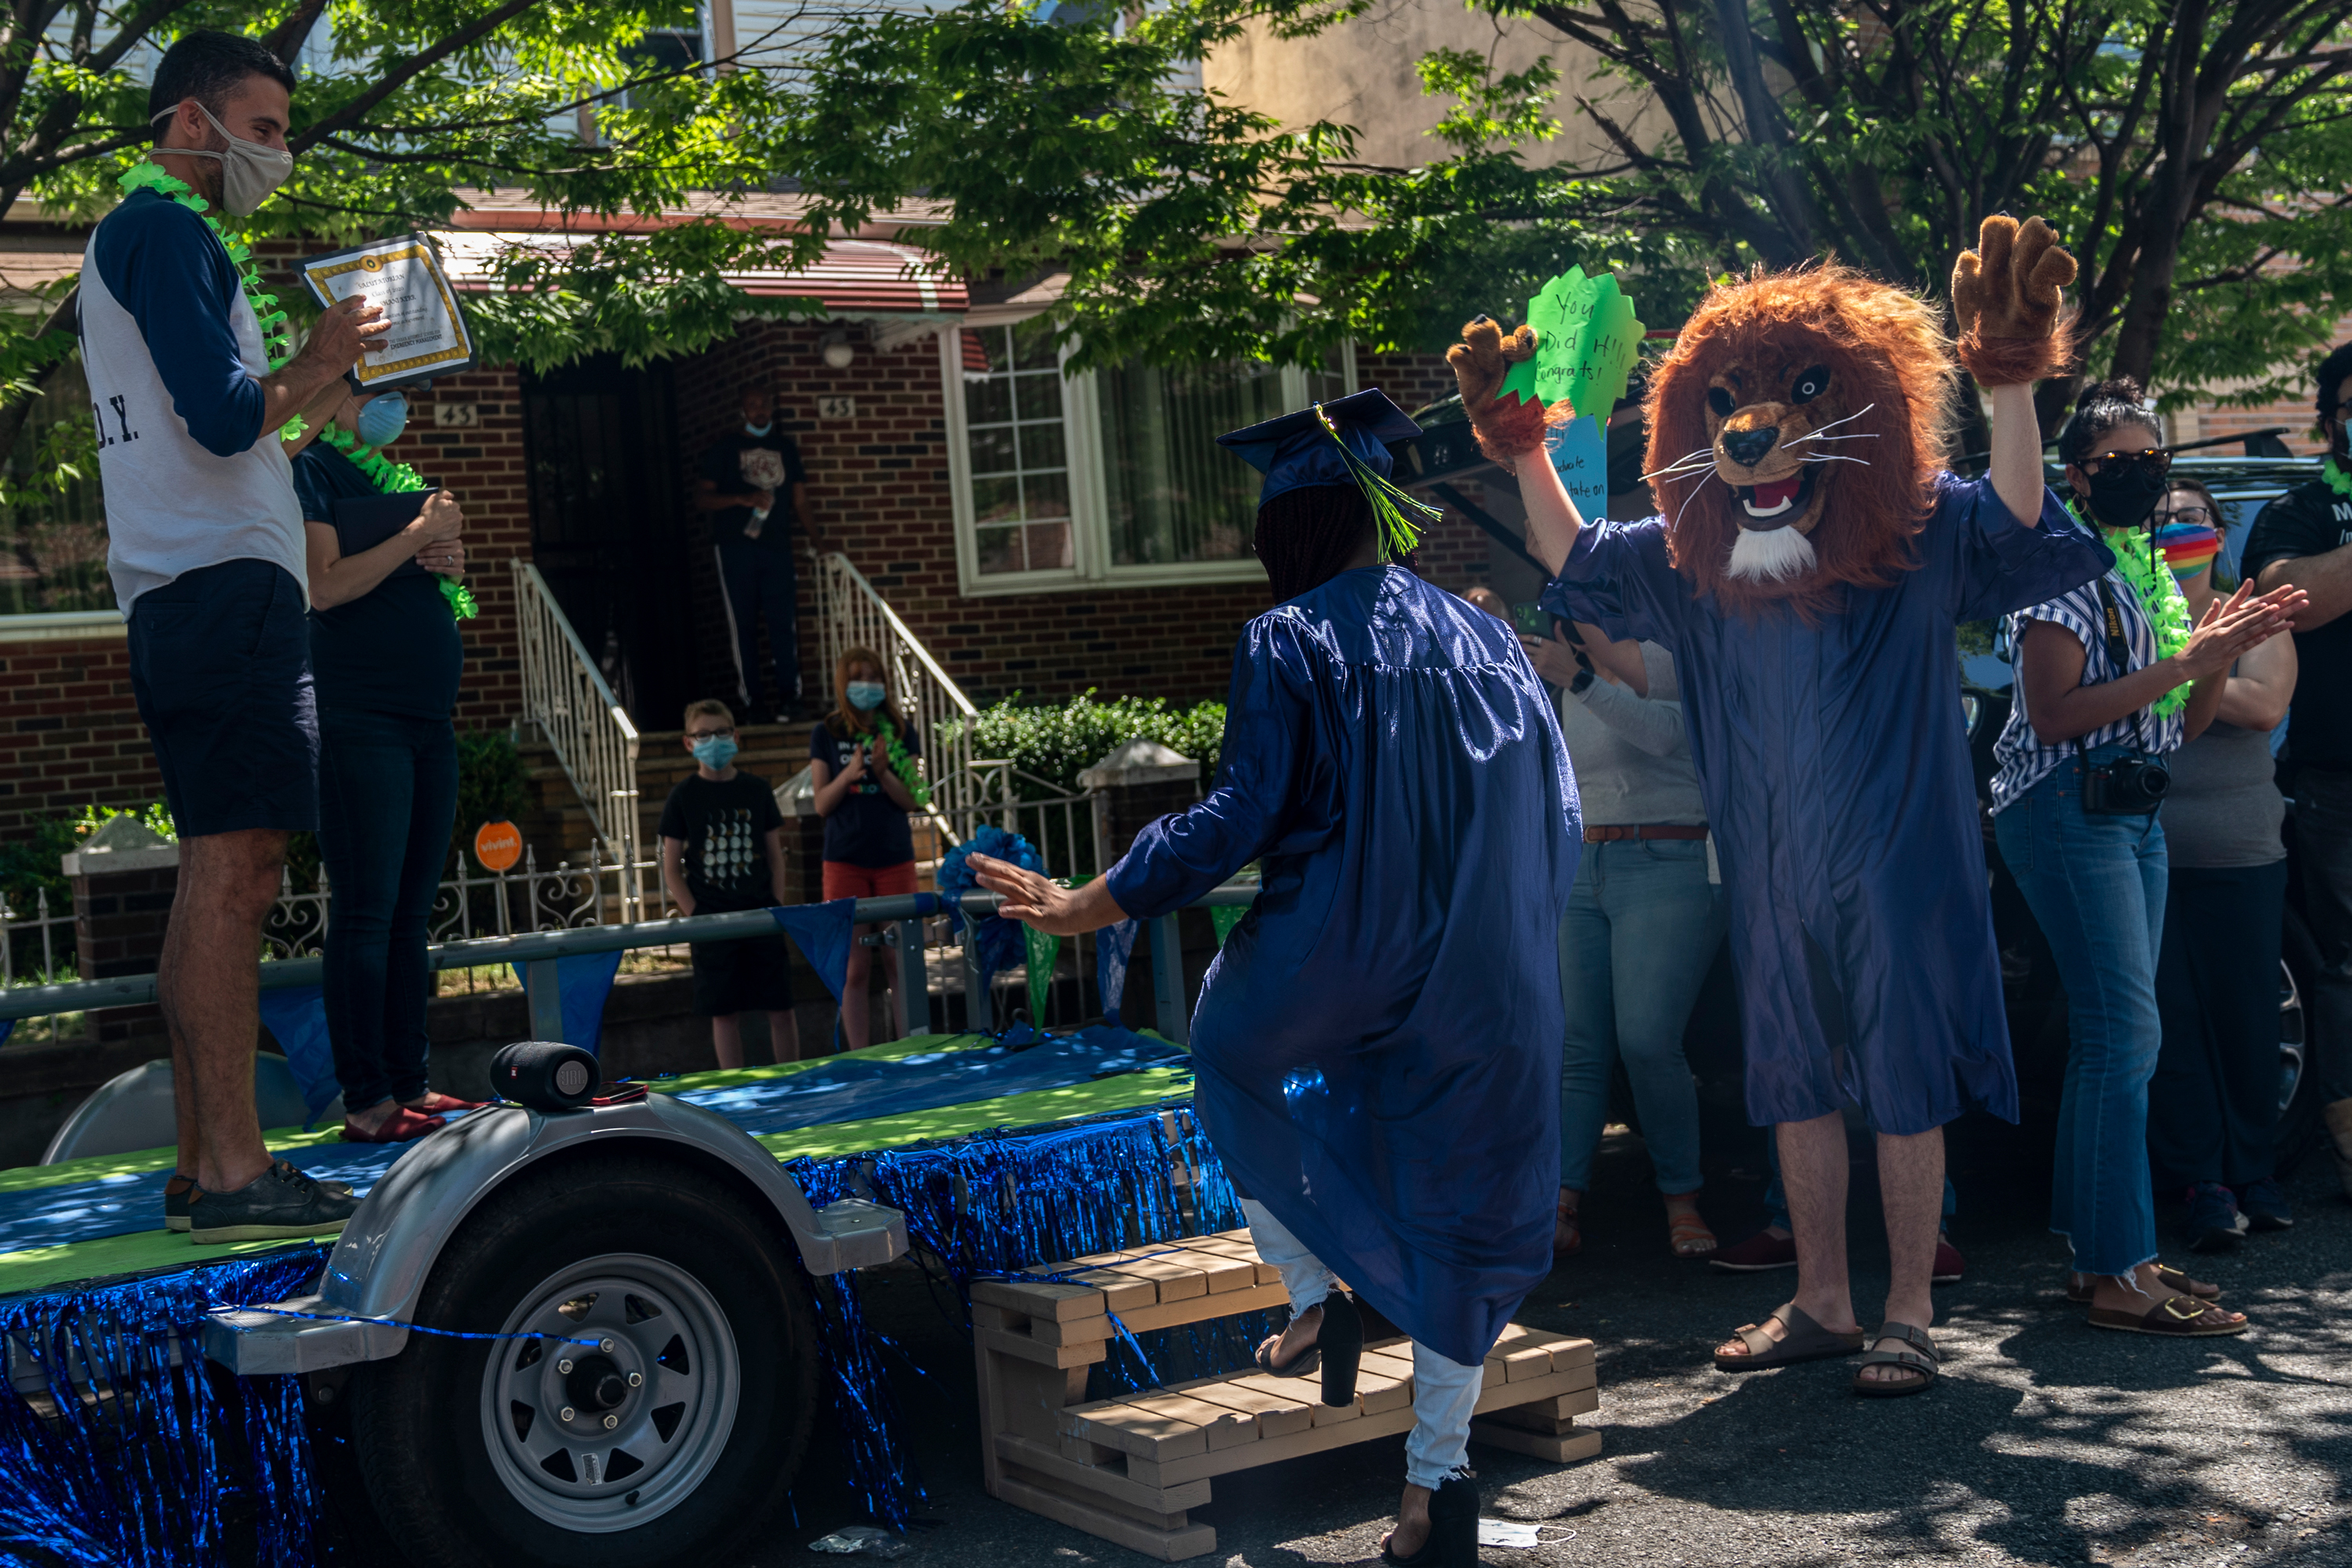 """Tashani Kerr, 18, approaches the UASEM graduation float, June 25, 2020. """"My mother told me she's proud to have me as a daughter,"""" said Kerr. """"I'm young but I've already achieved something a lot of people in my family never got the chance too."""" This fall she will start her first term as a biology major at Ithaca College. Kerr plans on becoming a Radiologist after college."""